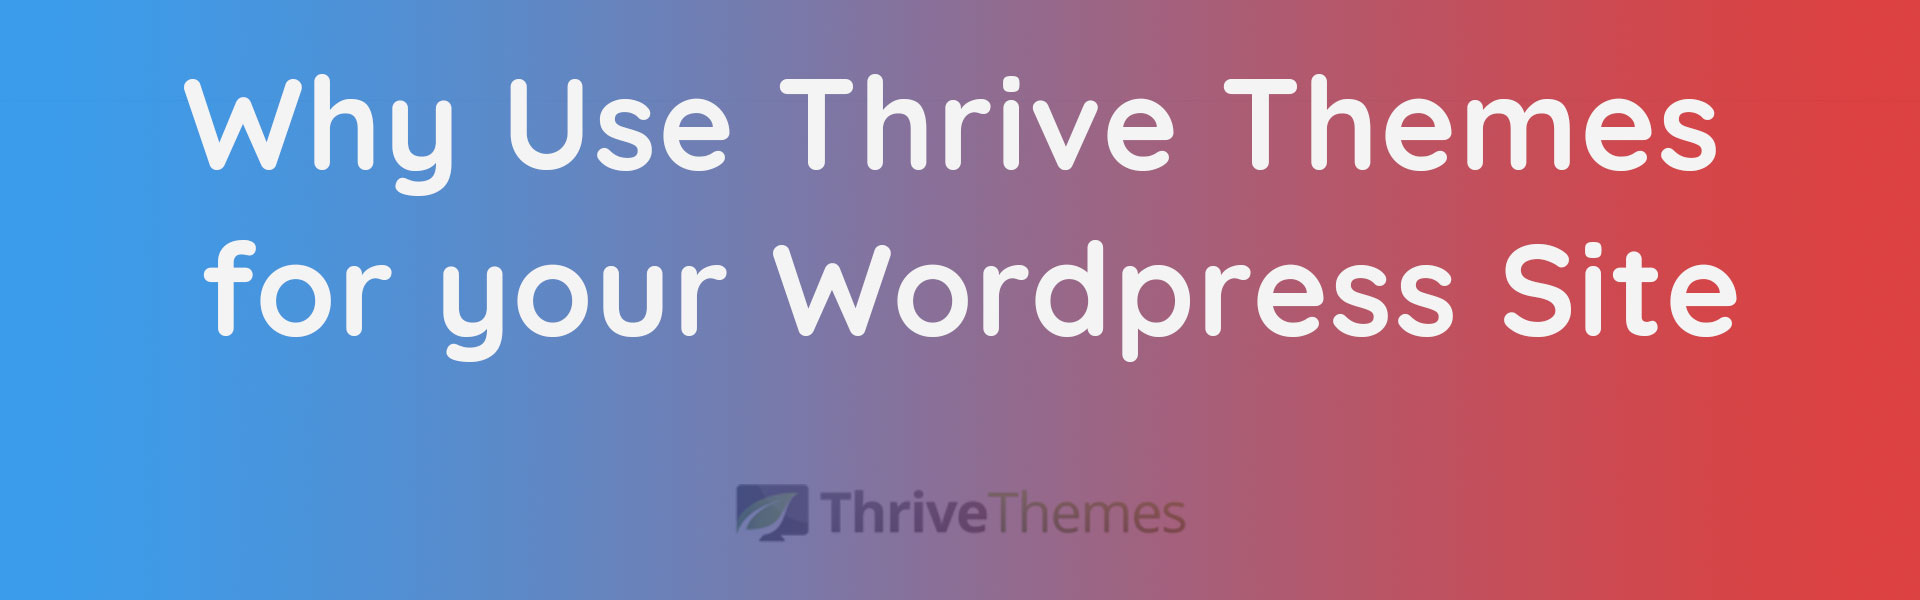 WordPress Themes Thrive Themes  Price Discount June 2020